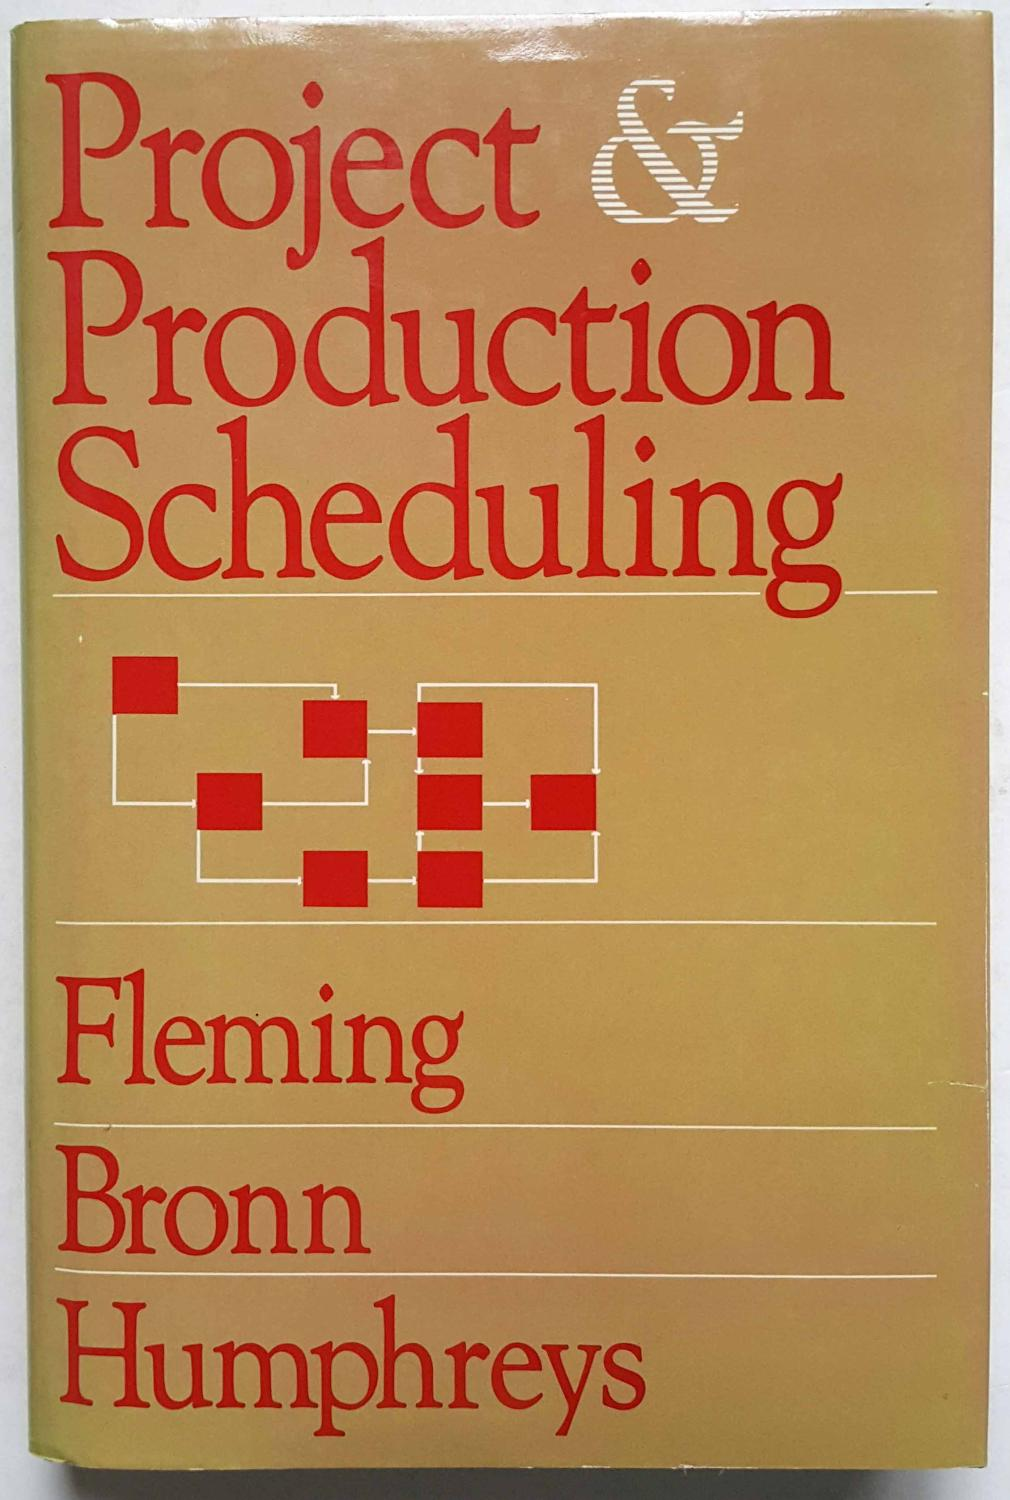 Project and Production Scheduling